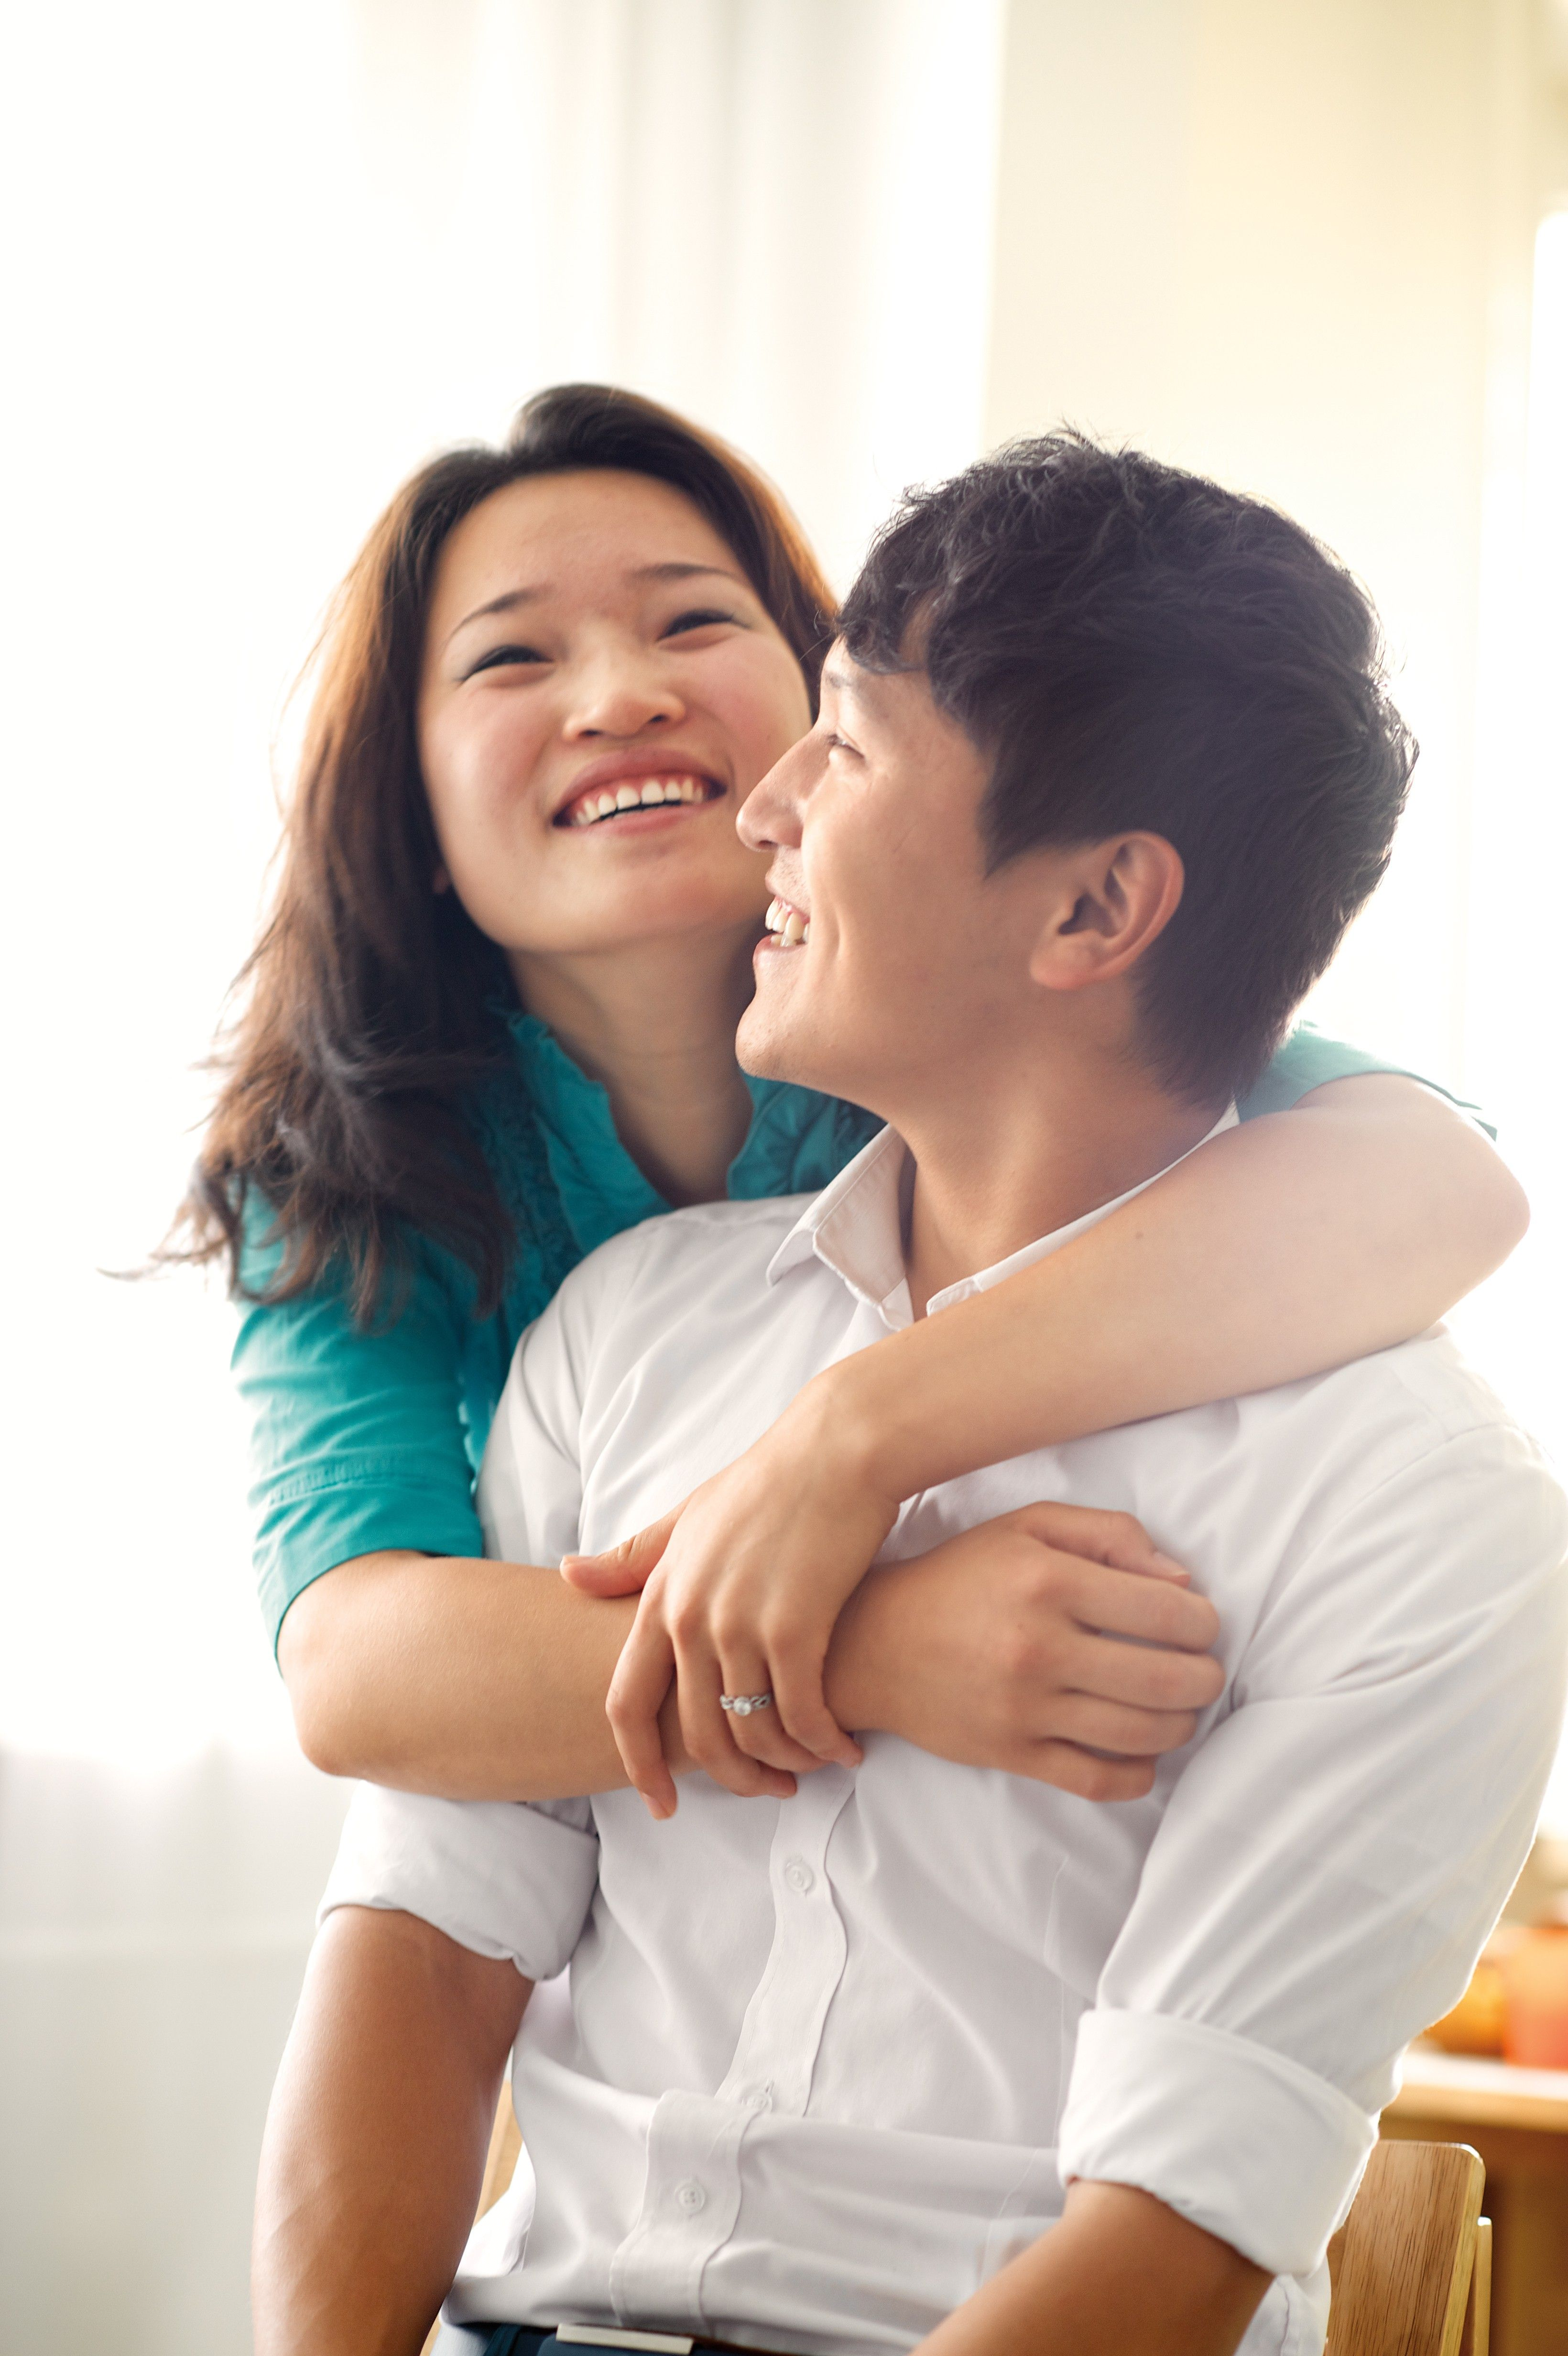 A portrait of a young couple hugging and smiling.